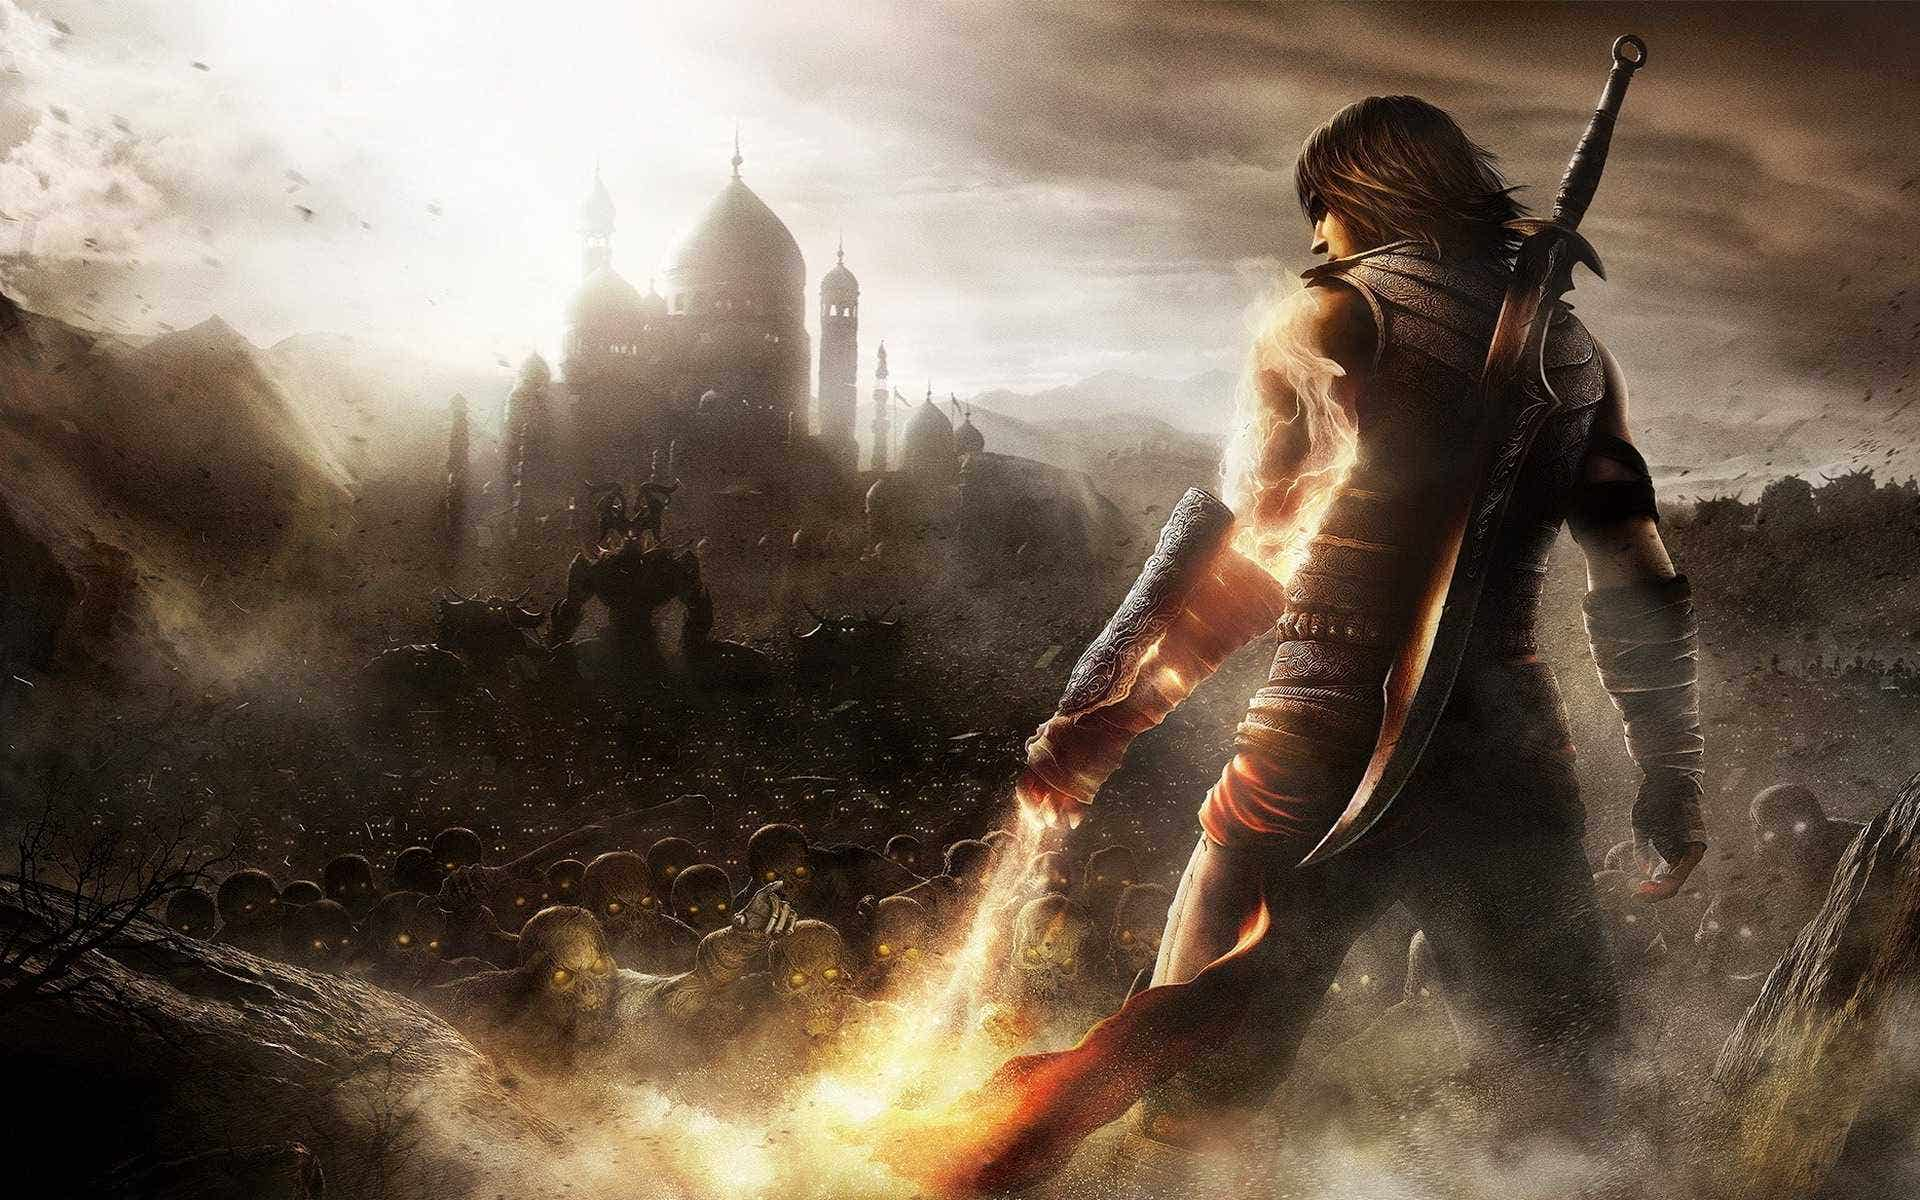 prince_of_persia_the_forgotten_sands-wide.jpg